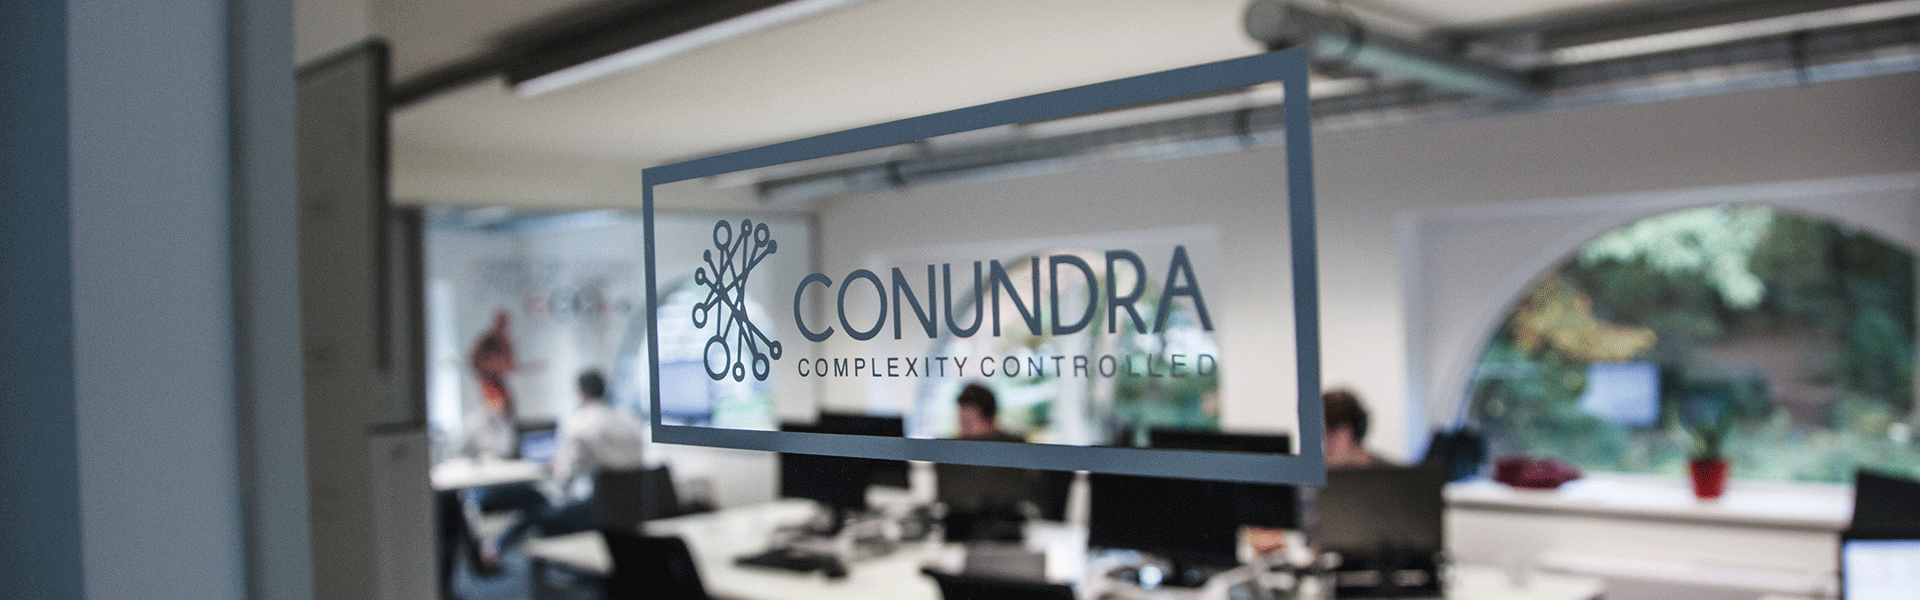 The Conundra Offices